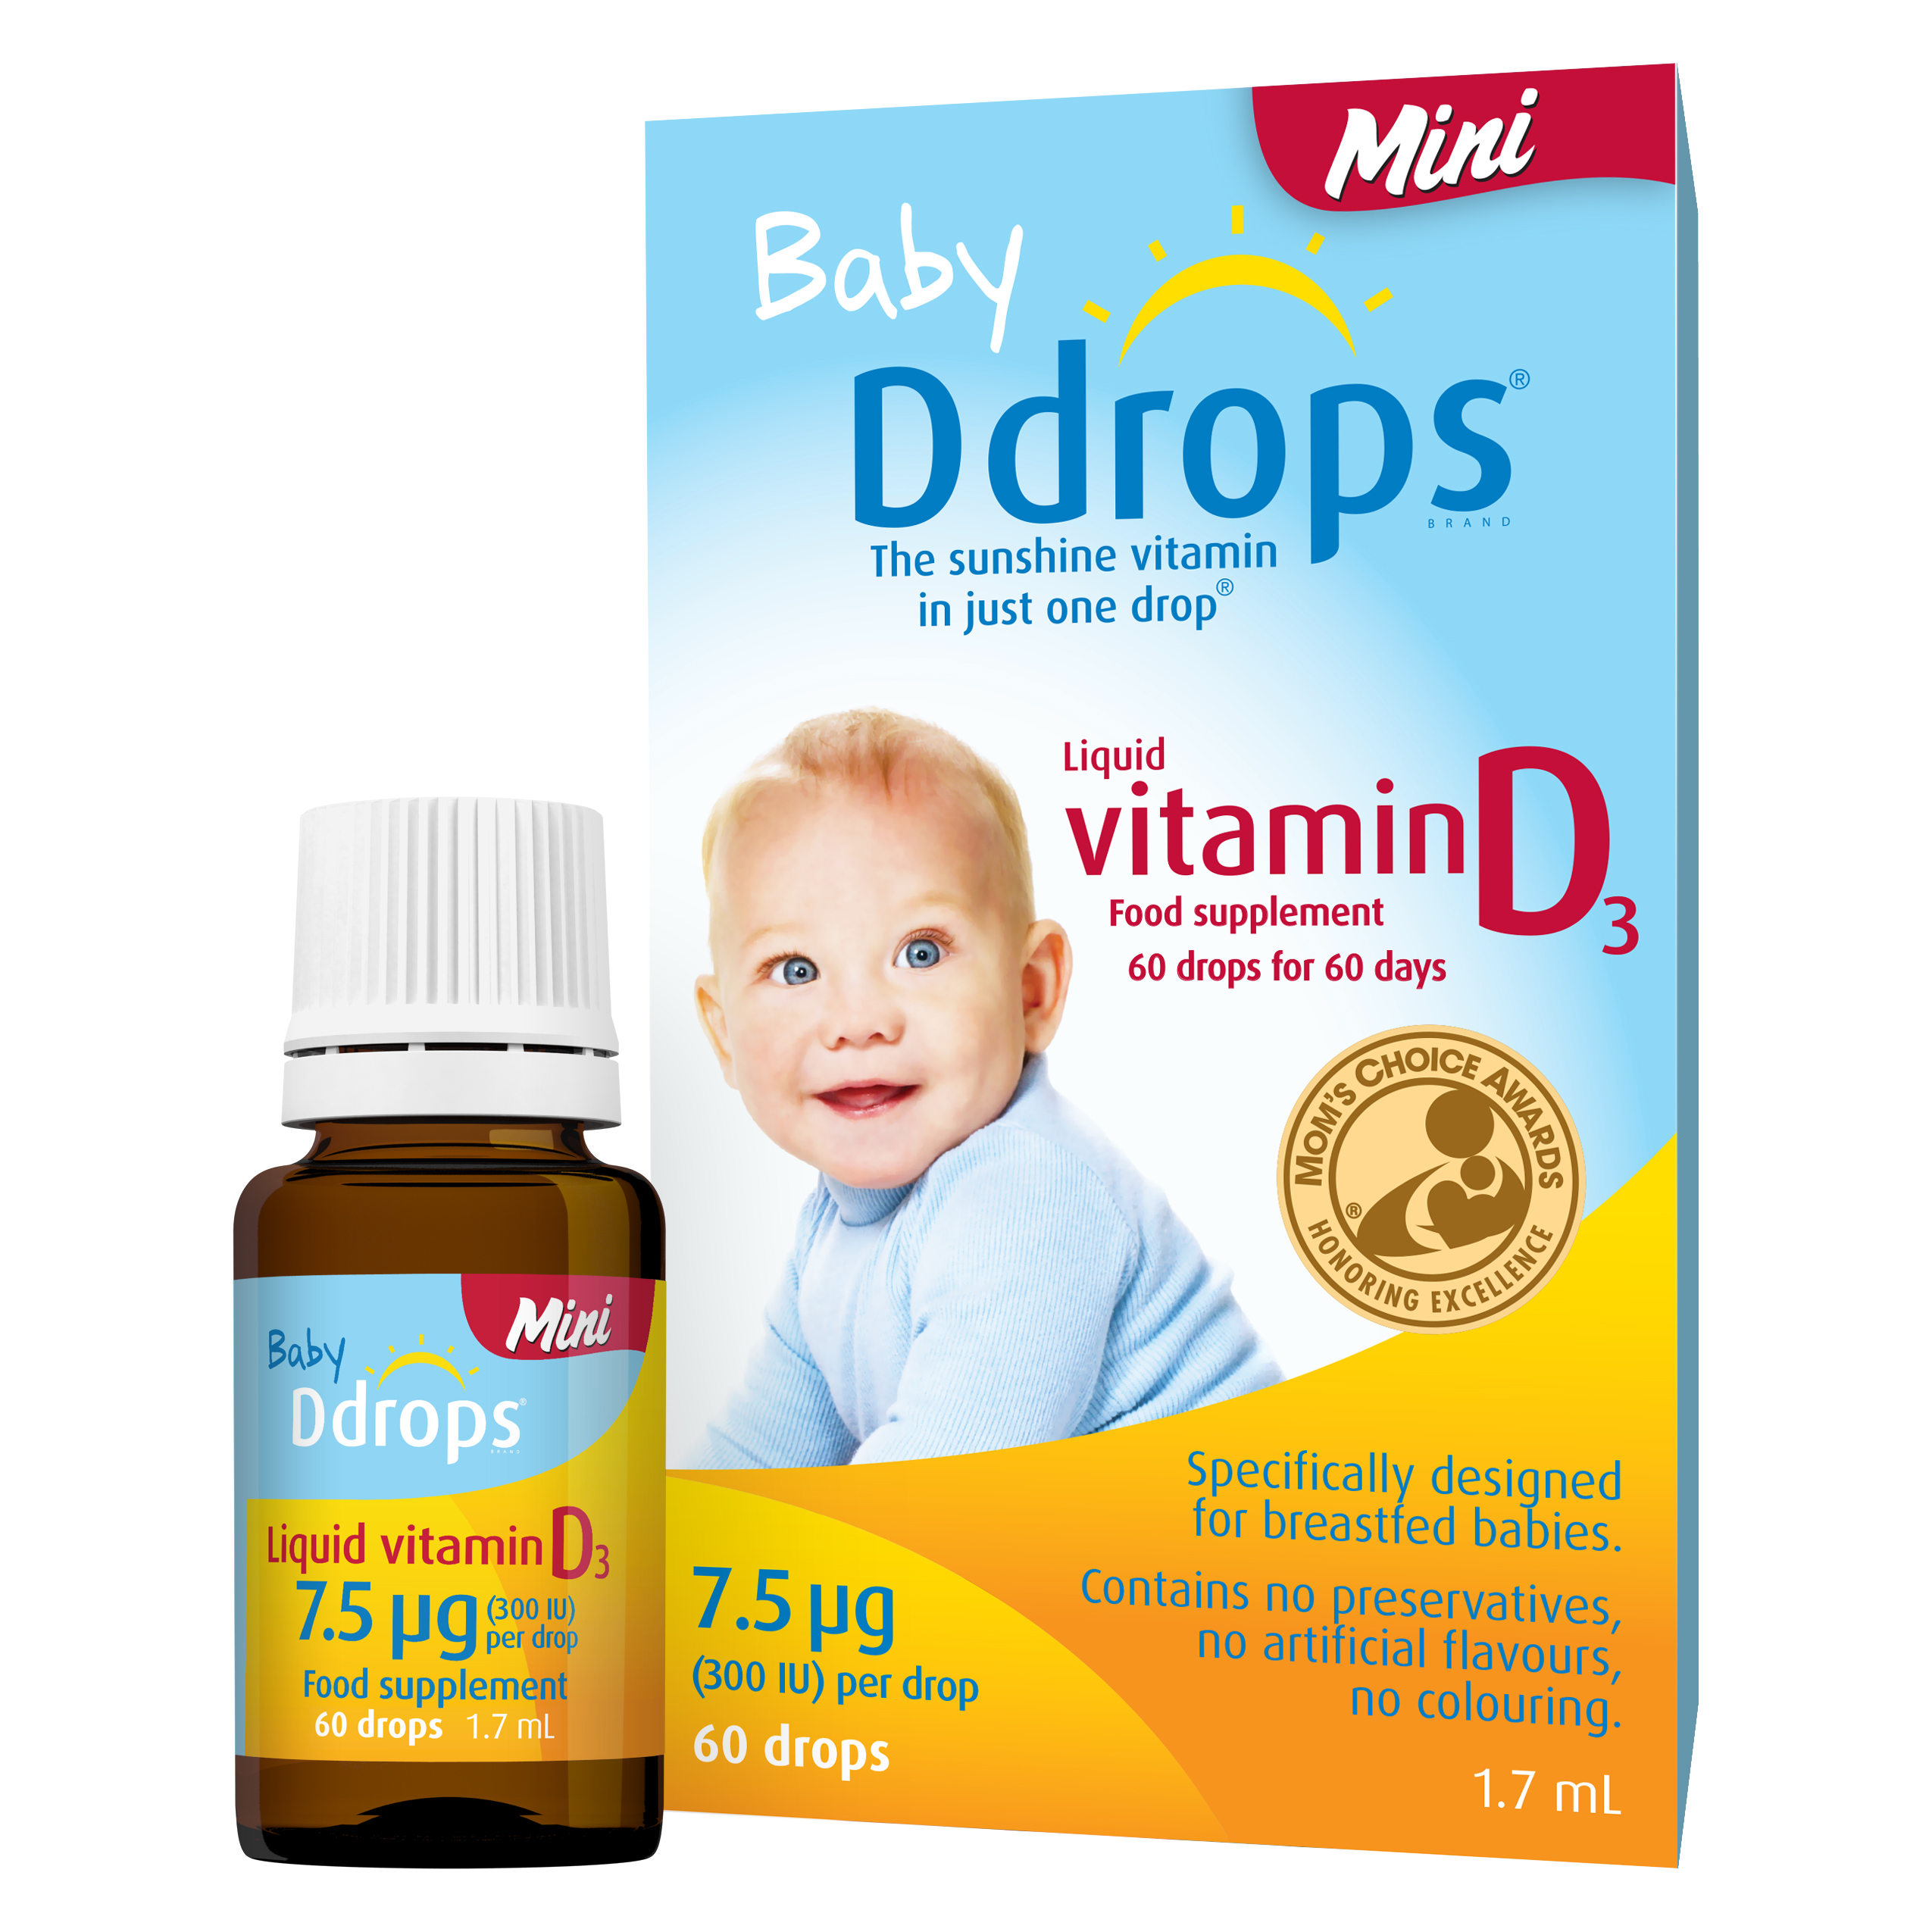 How important is vitamin D for newborns